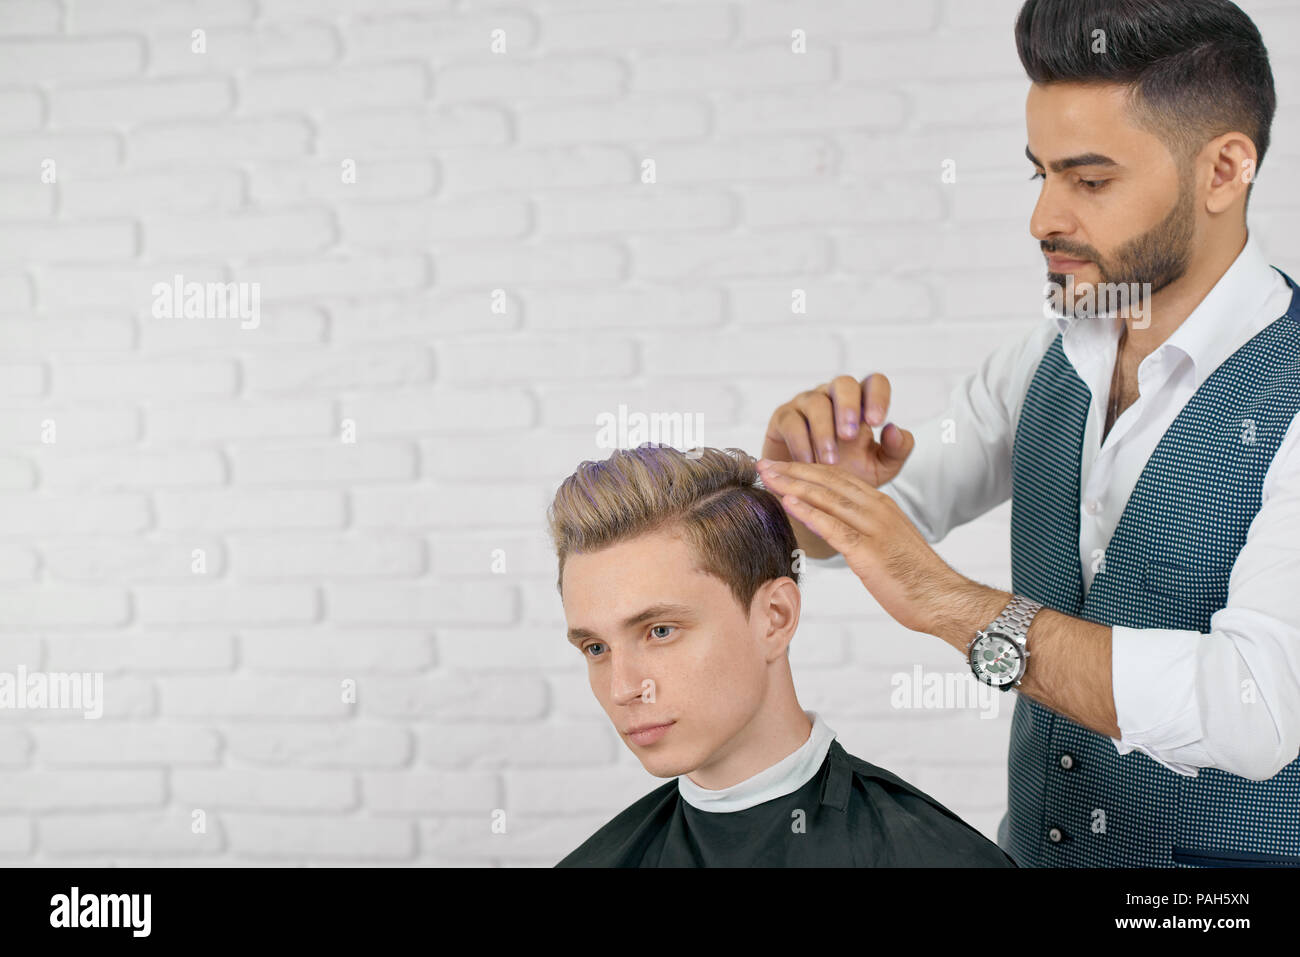 Barber doing lilac hair coloring for young handsome client. Hairdresser wearing grey waistcoat, white shirt, watch. Boy's clothes covered with special black cape. Sitting on white studio background. - Stock Image